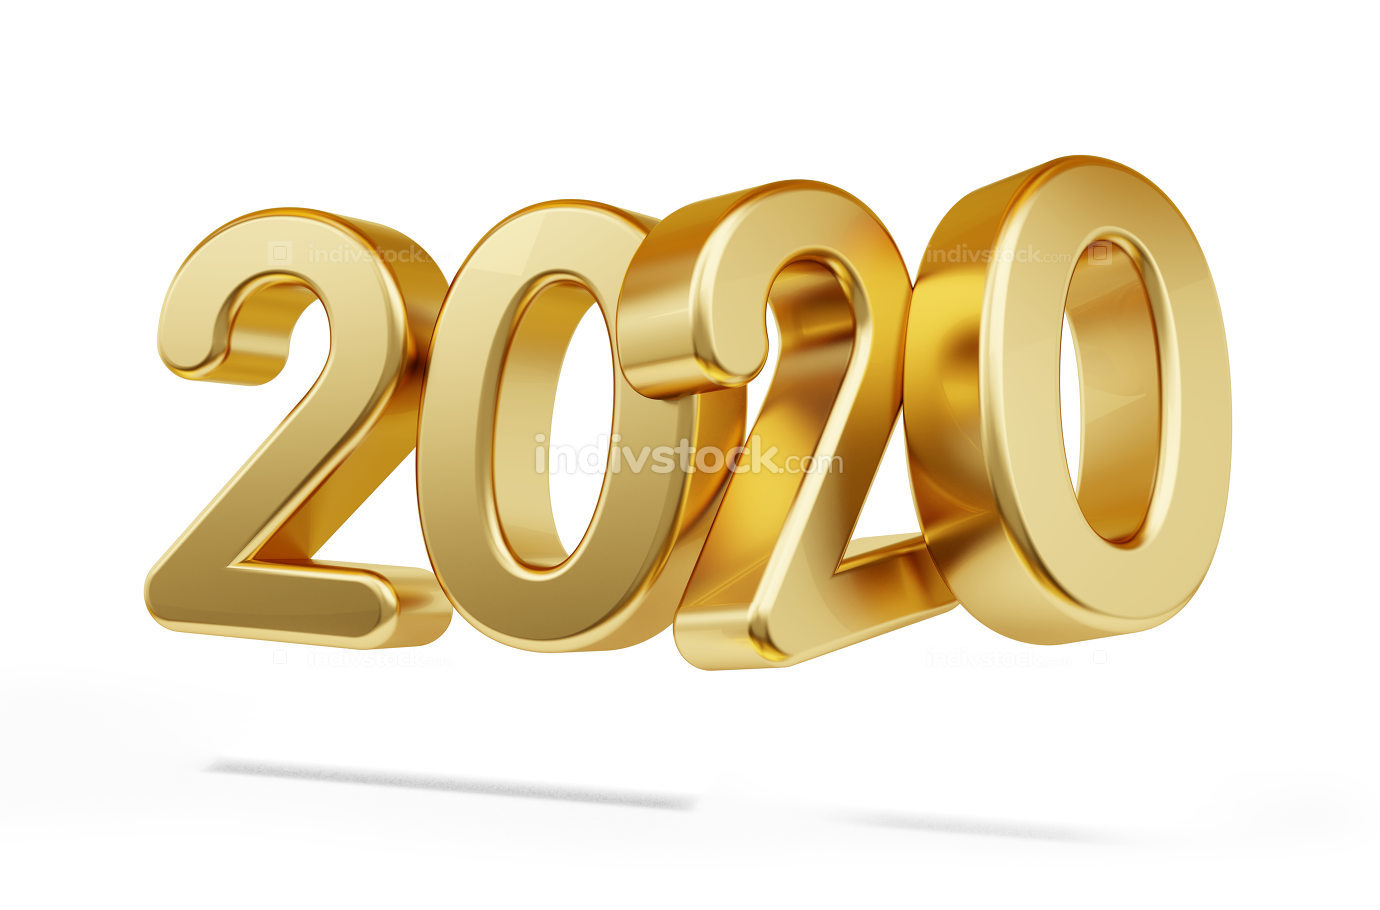 free download: 2020 golden bold letters isolated on white 3d-illustration